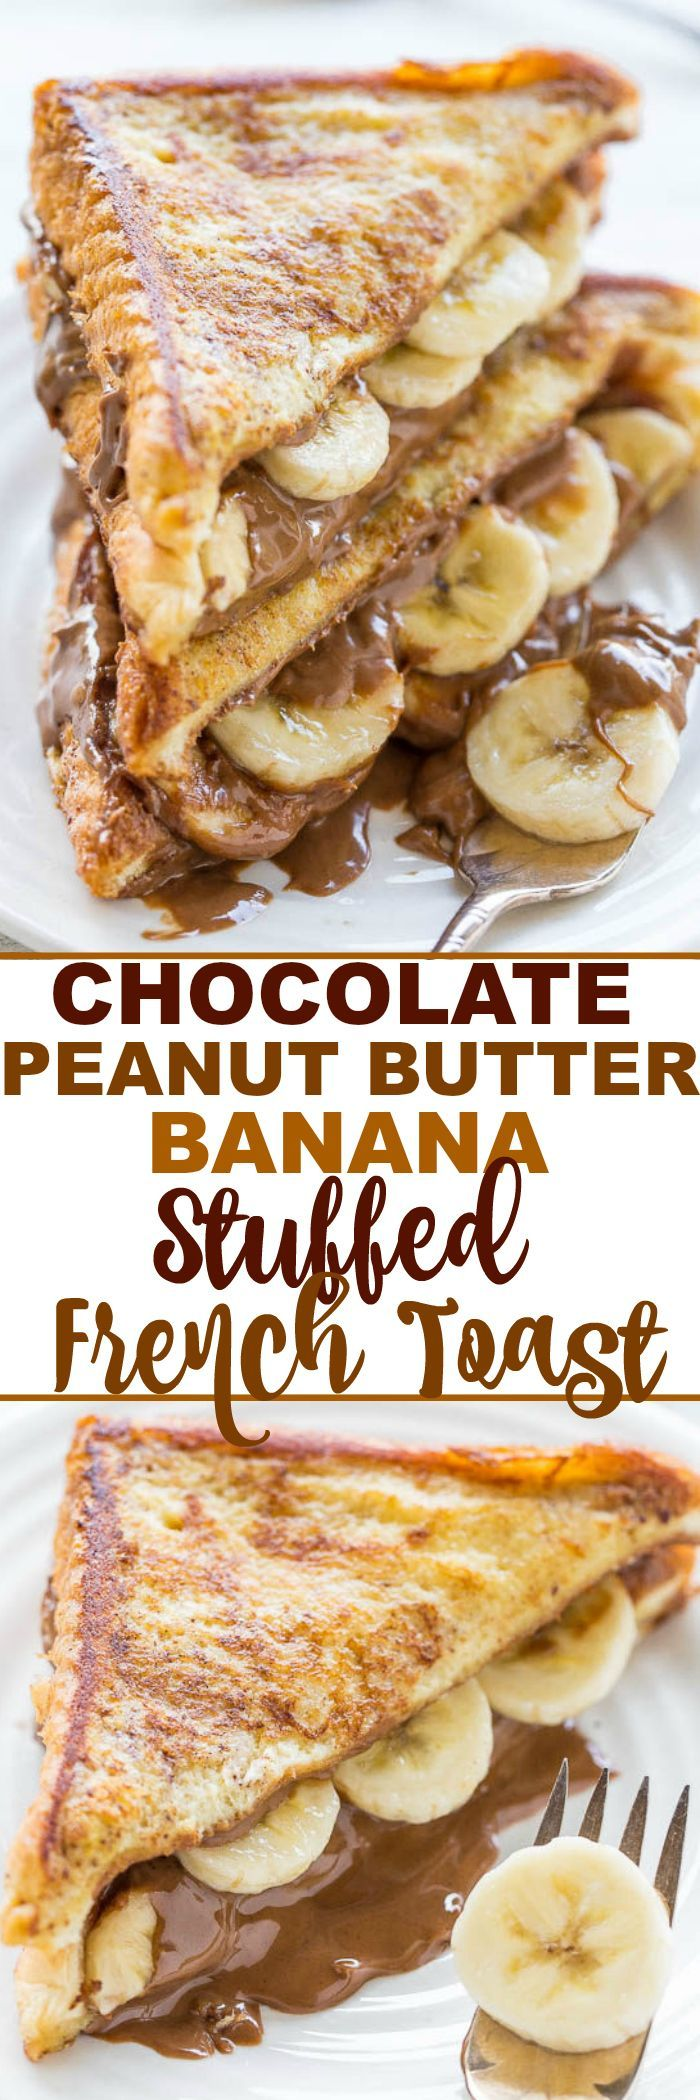 Chocolate Peanut Butter Banana Stuffed French Toast - A decadent twist on peanut butter and banana sandwiches!! Great for lazy weekend mornings or holiday brunches! Easy and the BEST French toast ever!! Come and see our new website at bakedcomfortfood.com!